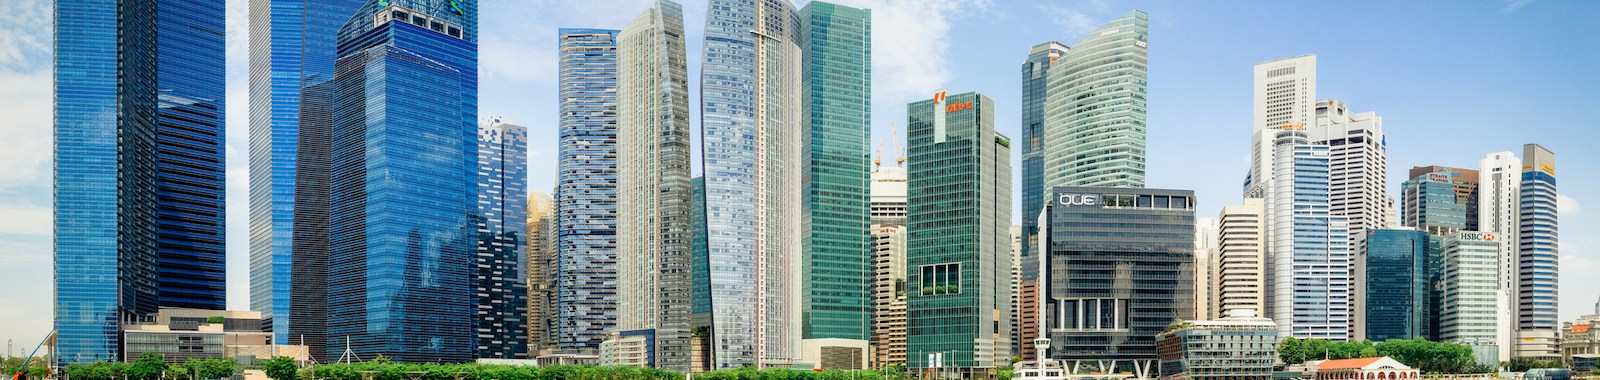 Beautiful landscape of Singapore city in sunny day.